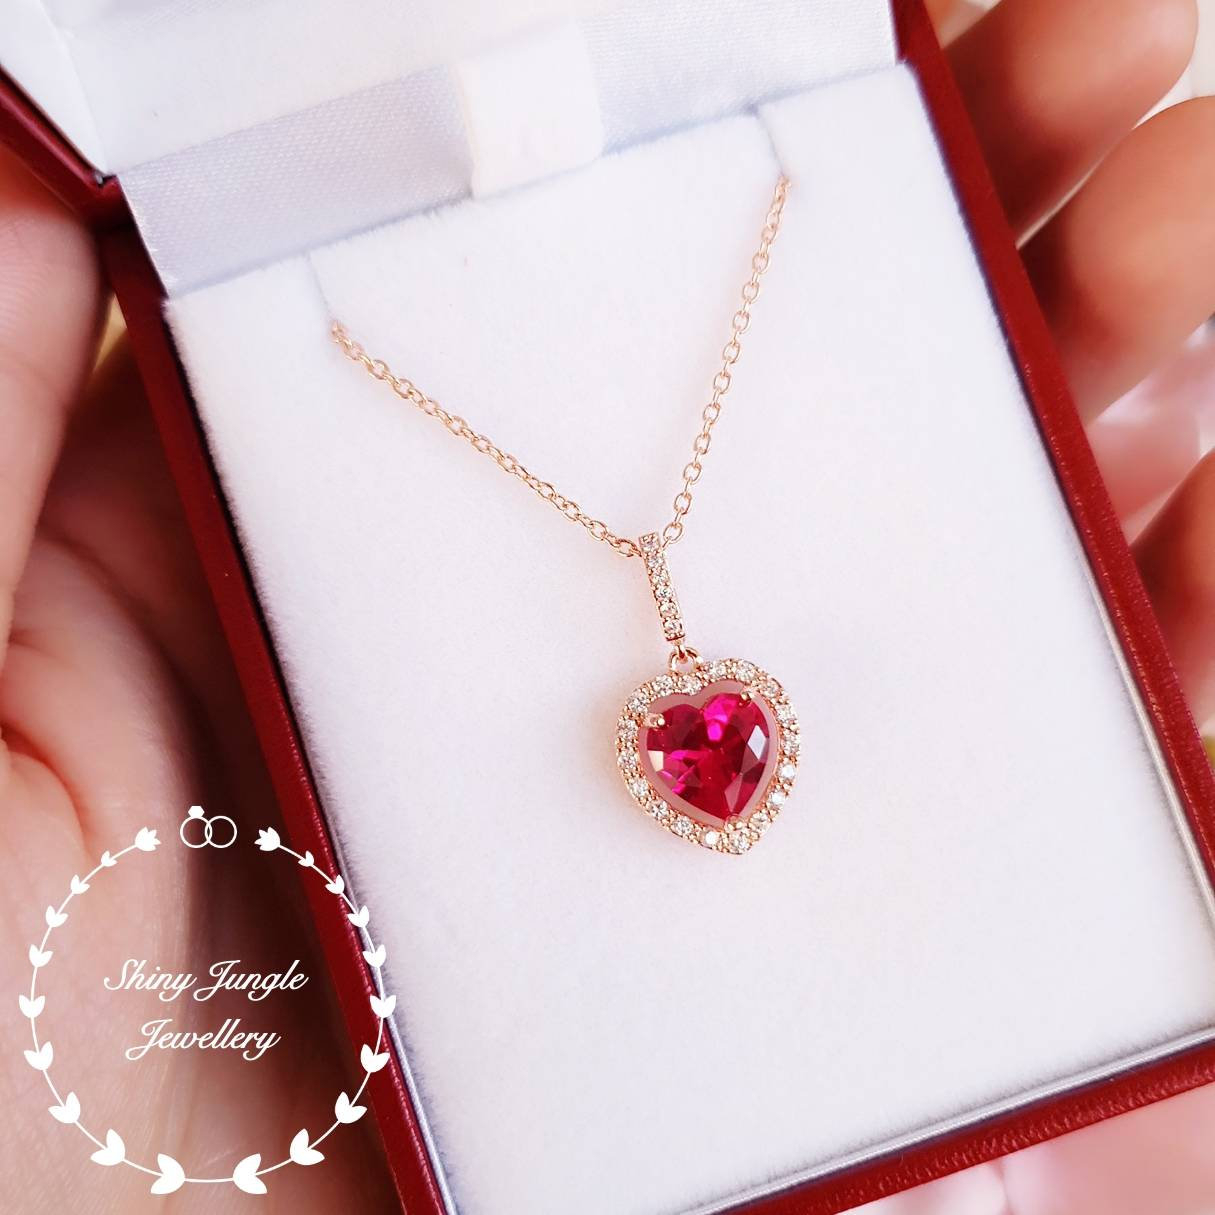 Halo Heart Shaped Ruby Necklace, Rose Gold Plated Heart Cut Ruby Intended For Most Popular Red July Birthstone Locket Element Necklaces (View 9 of 25)